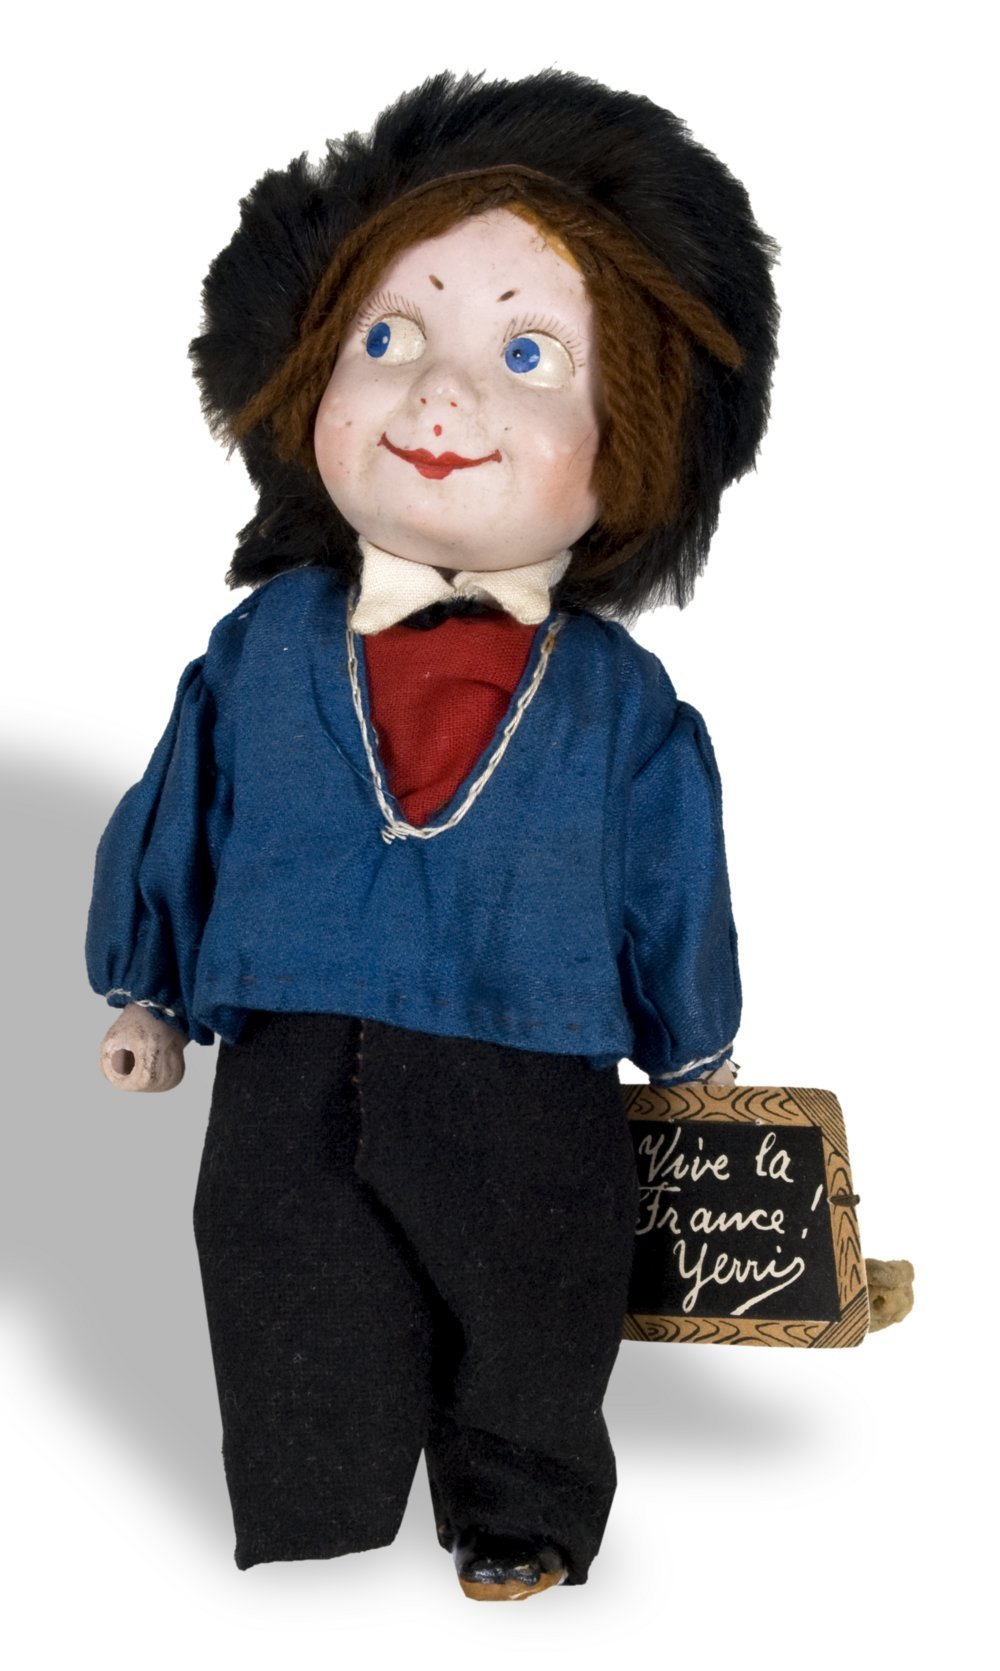 French Yerri doll